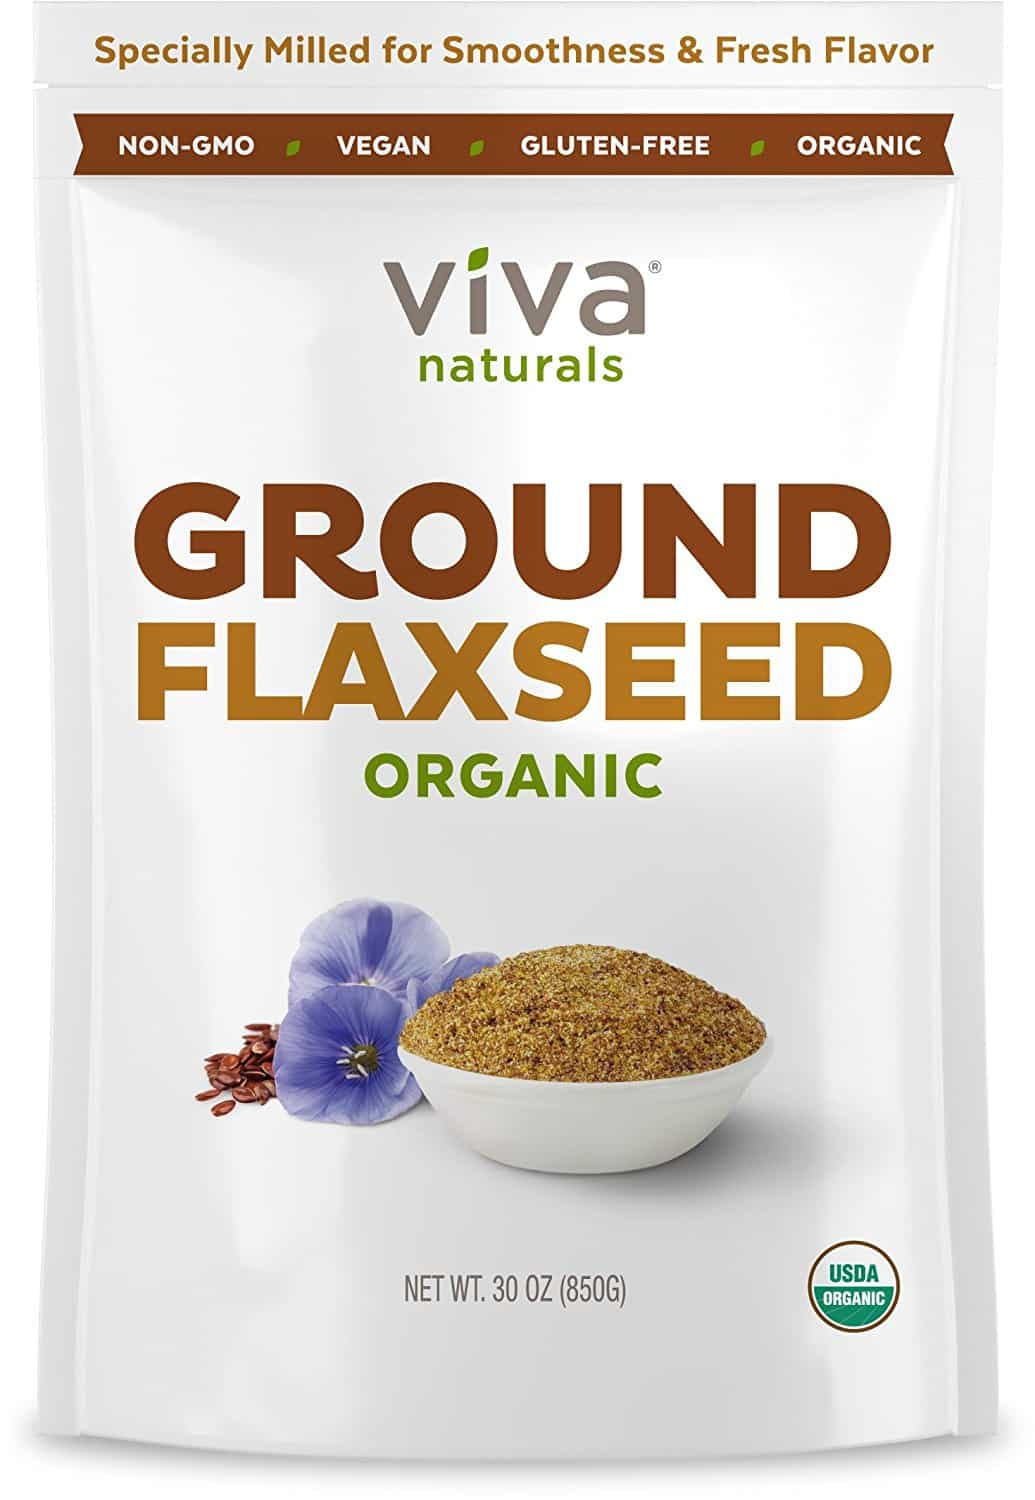 Whole Foods Flax Seed Price